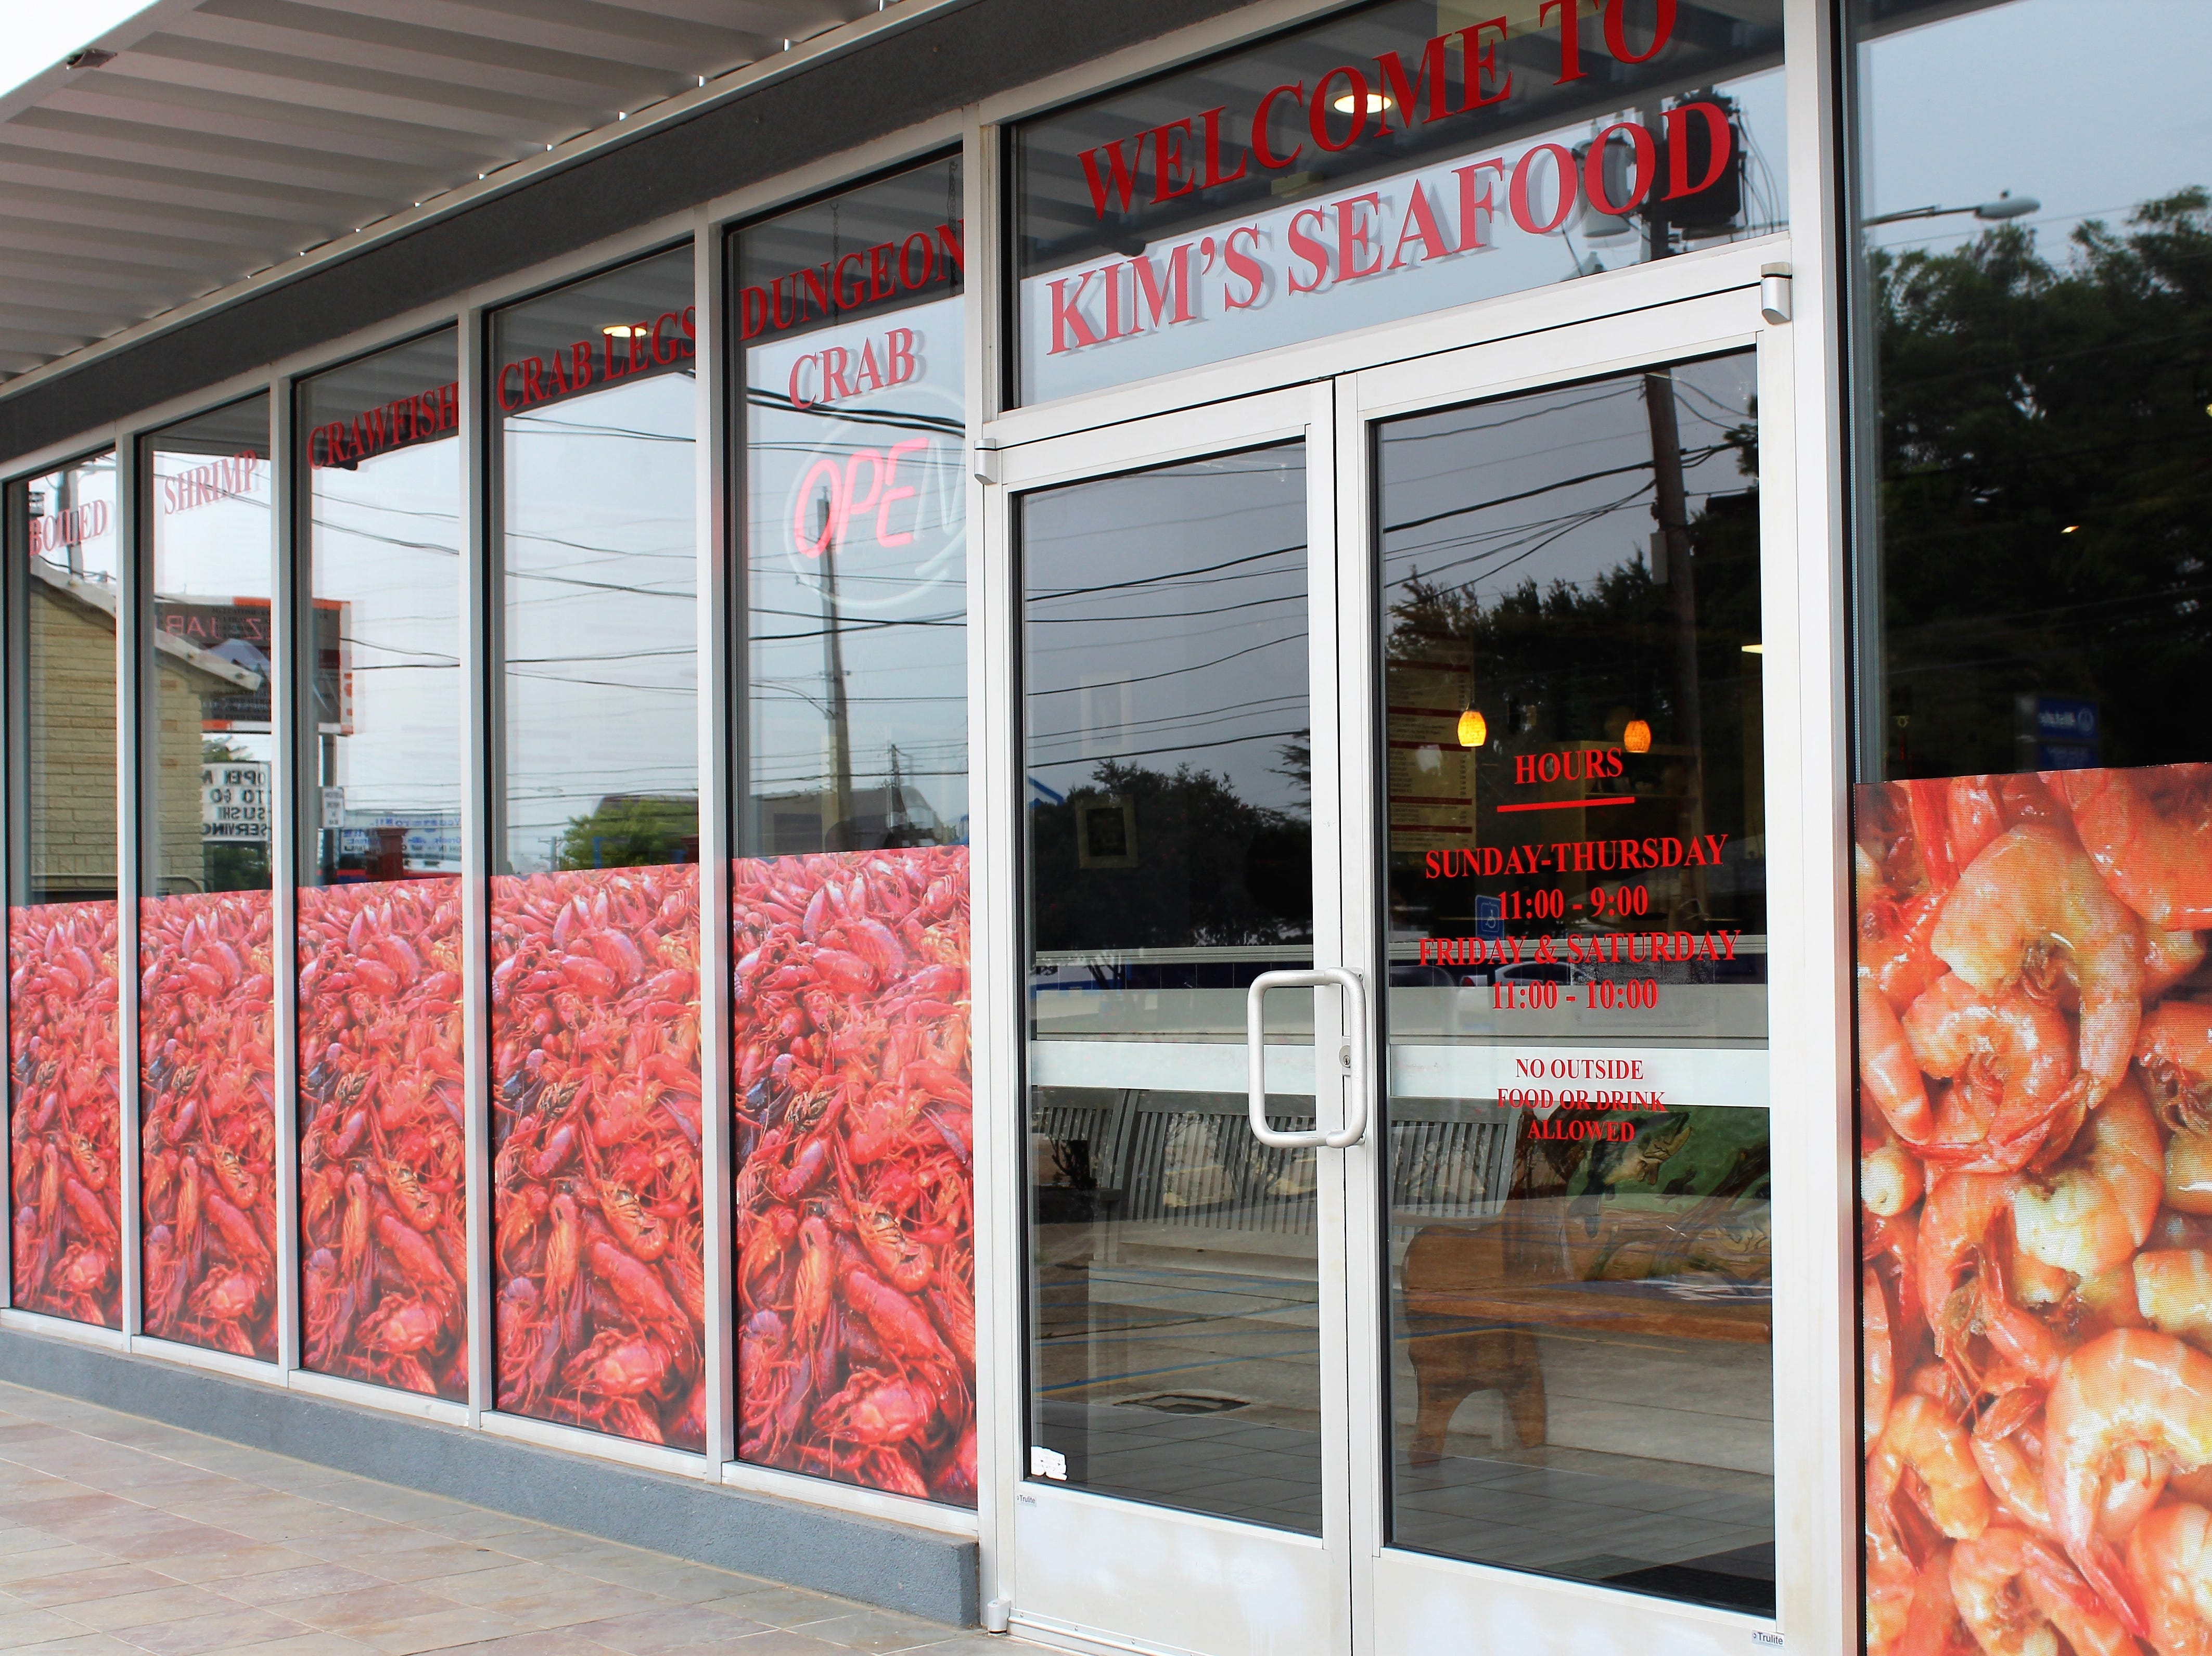 Kim's Seafood opens second location in Shreveport.